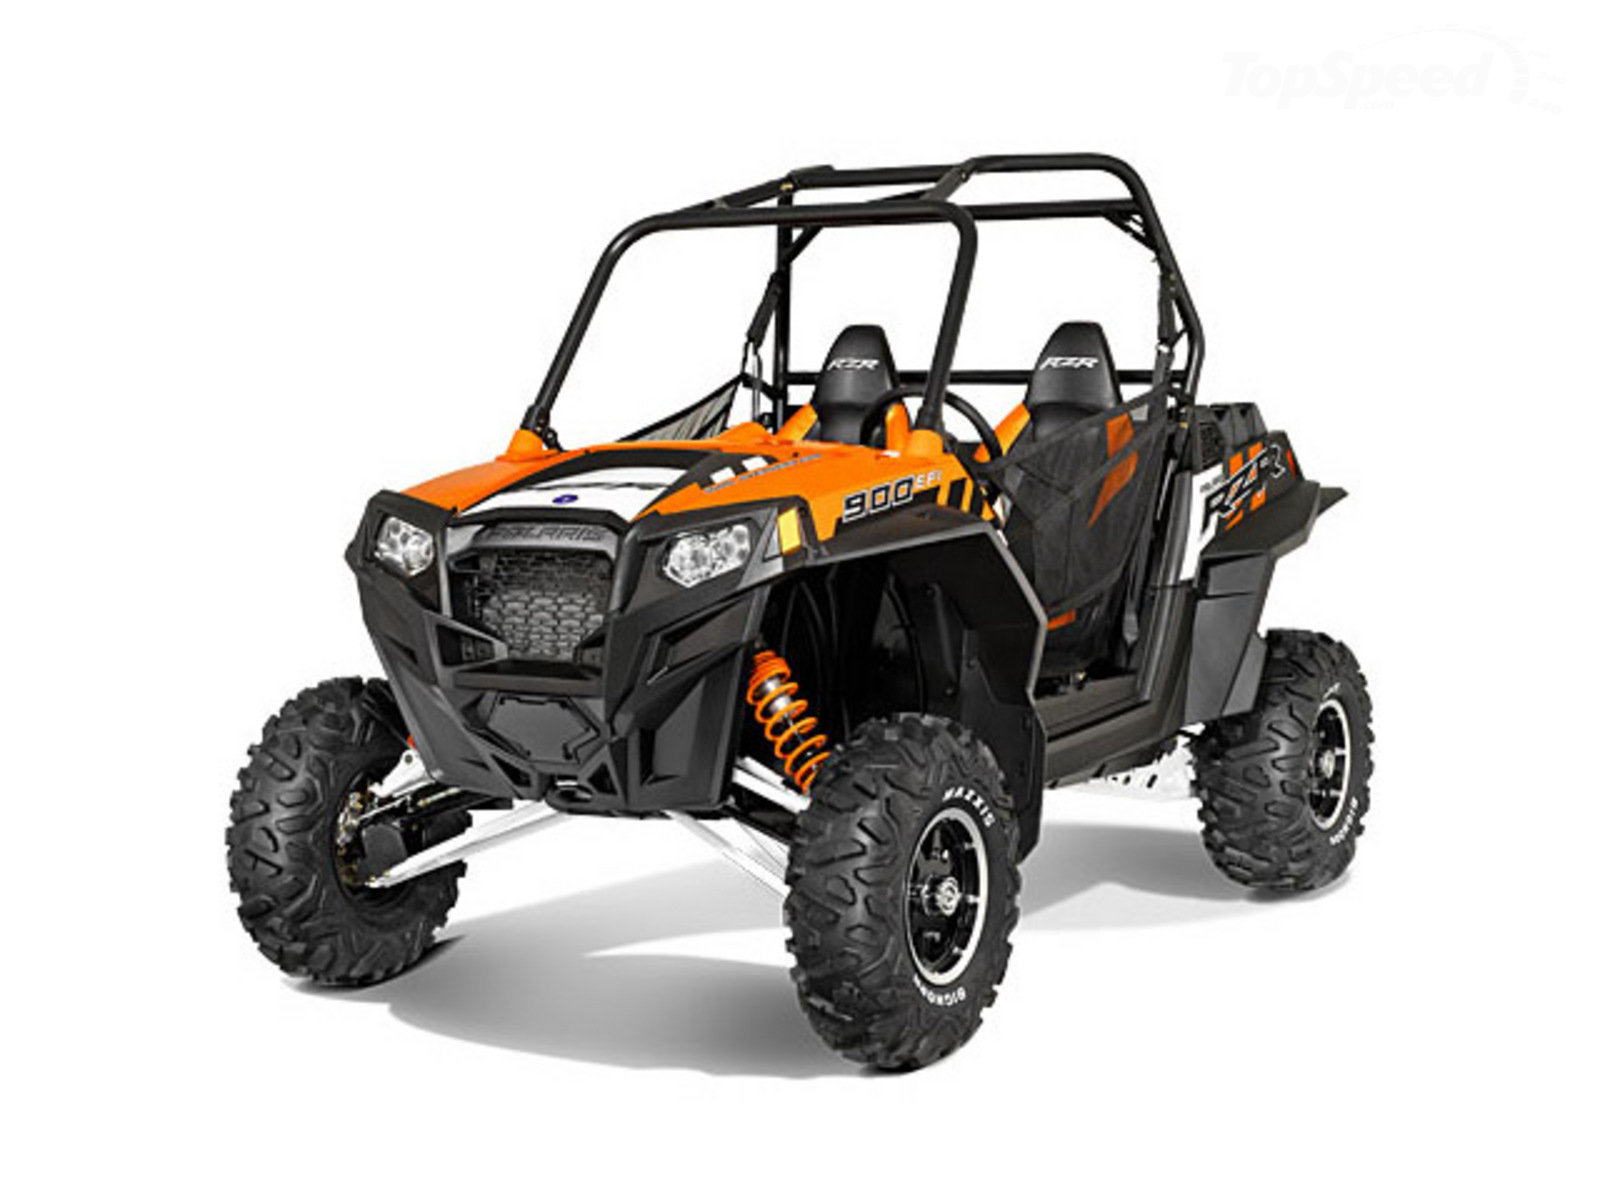 2014 polaris rzr 900 eps review top speed. Black Bedroom Furniture Sets. Home Design Ideas